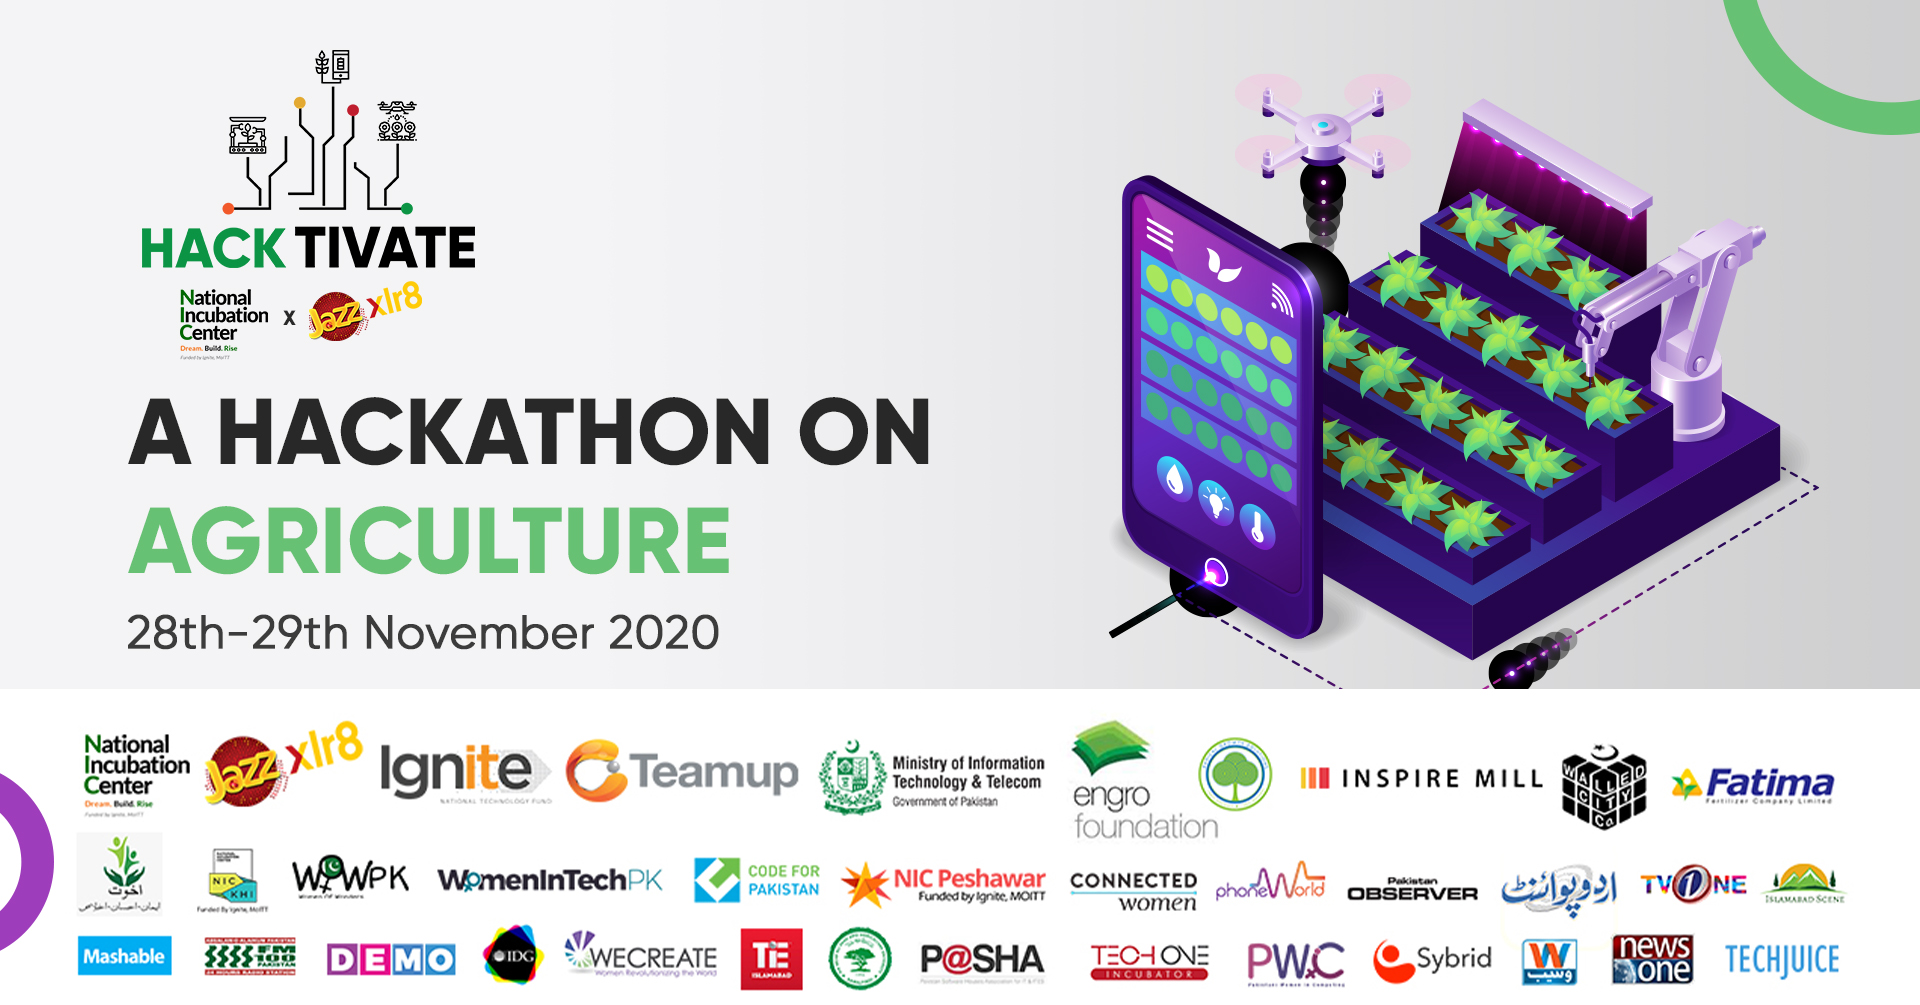 Hacktivate 3.0 - A Hackathon on Agriculture